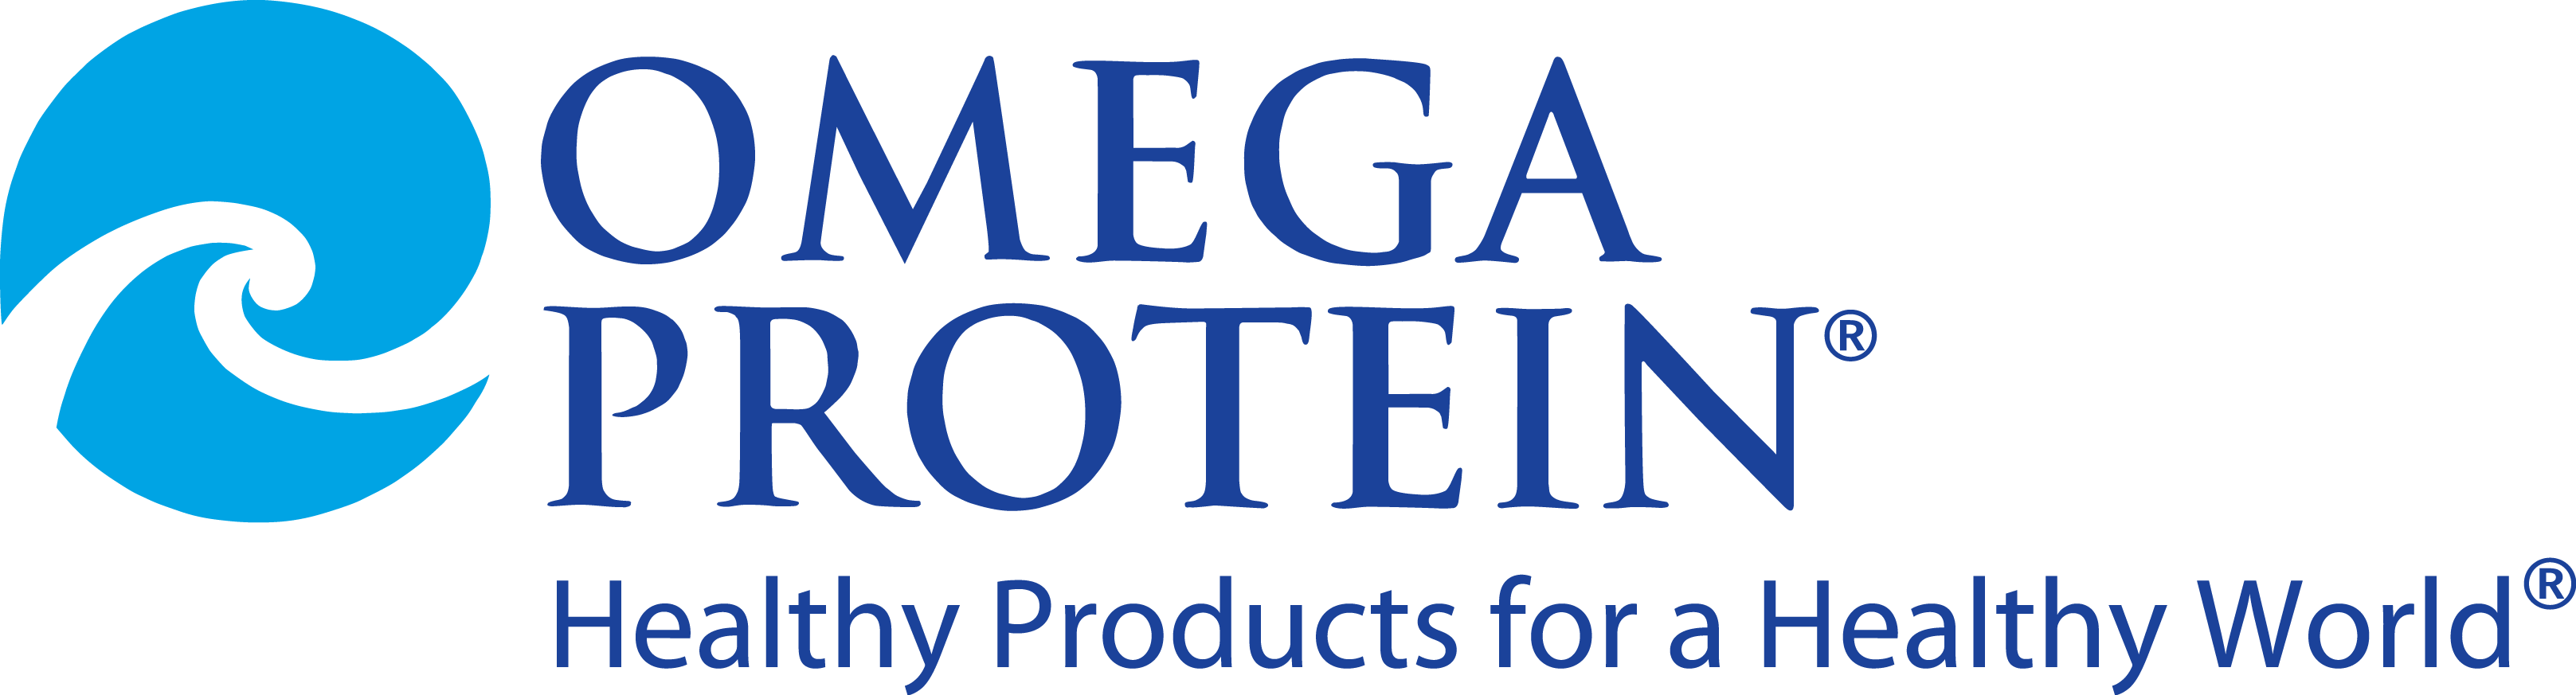 Latest Video from Omega Protein Shows Company's Impact on Local Fishing Communities